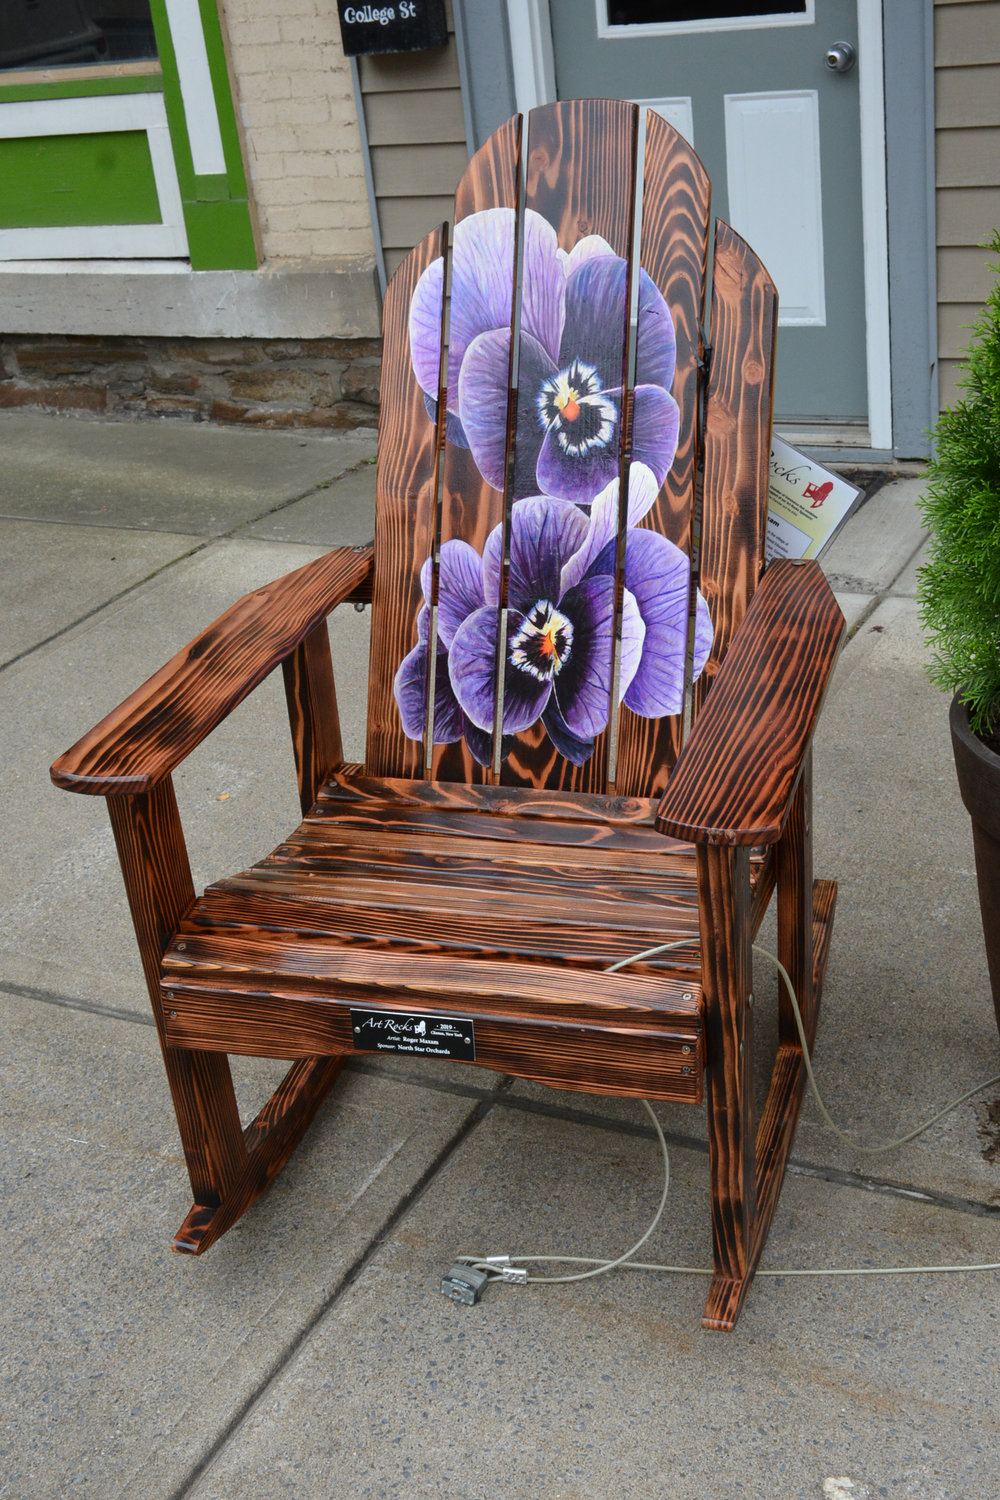 ROCKING, ROCKING CHAIR—ART ROCKS! — This is one of the many chairs and benches painted by local artists that will be auctioned off at 4:30 p.m. Saturday, Aug. 24 during the annual Clinton Art & Music Festival. This chair was painted by Roger Maxam.